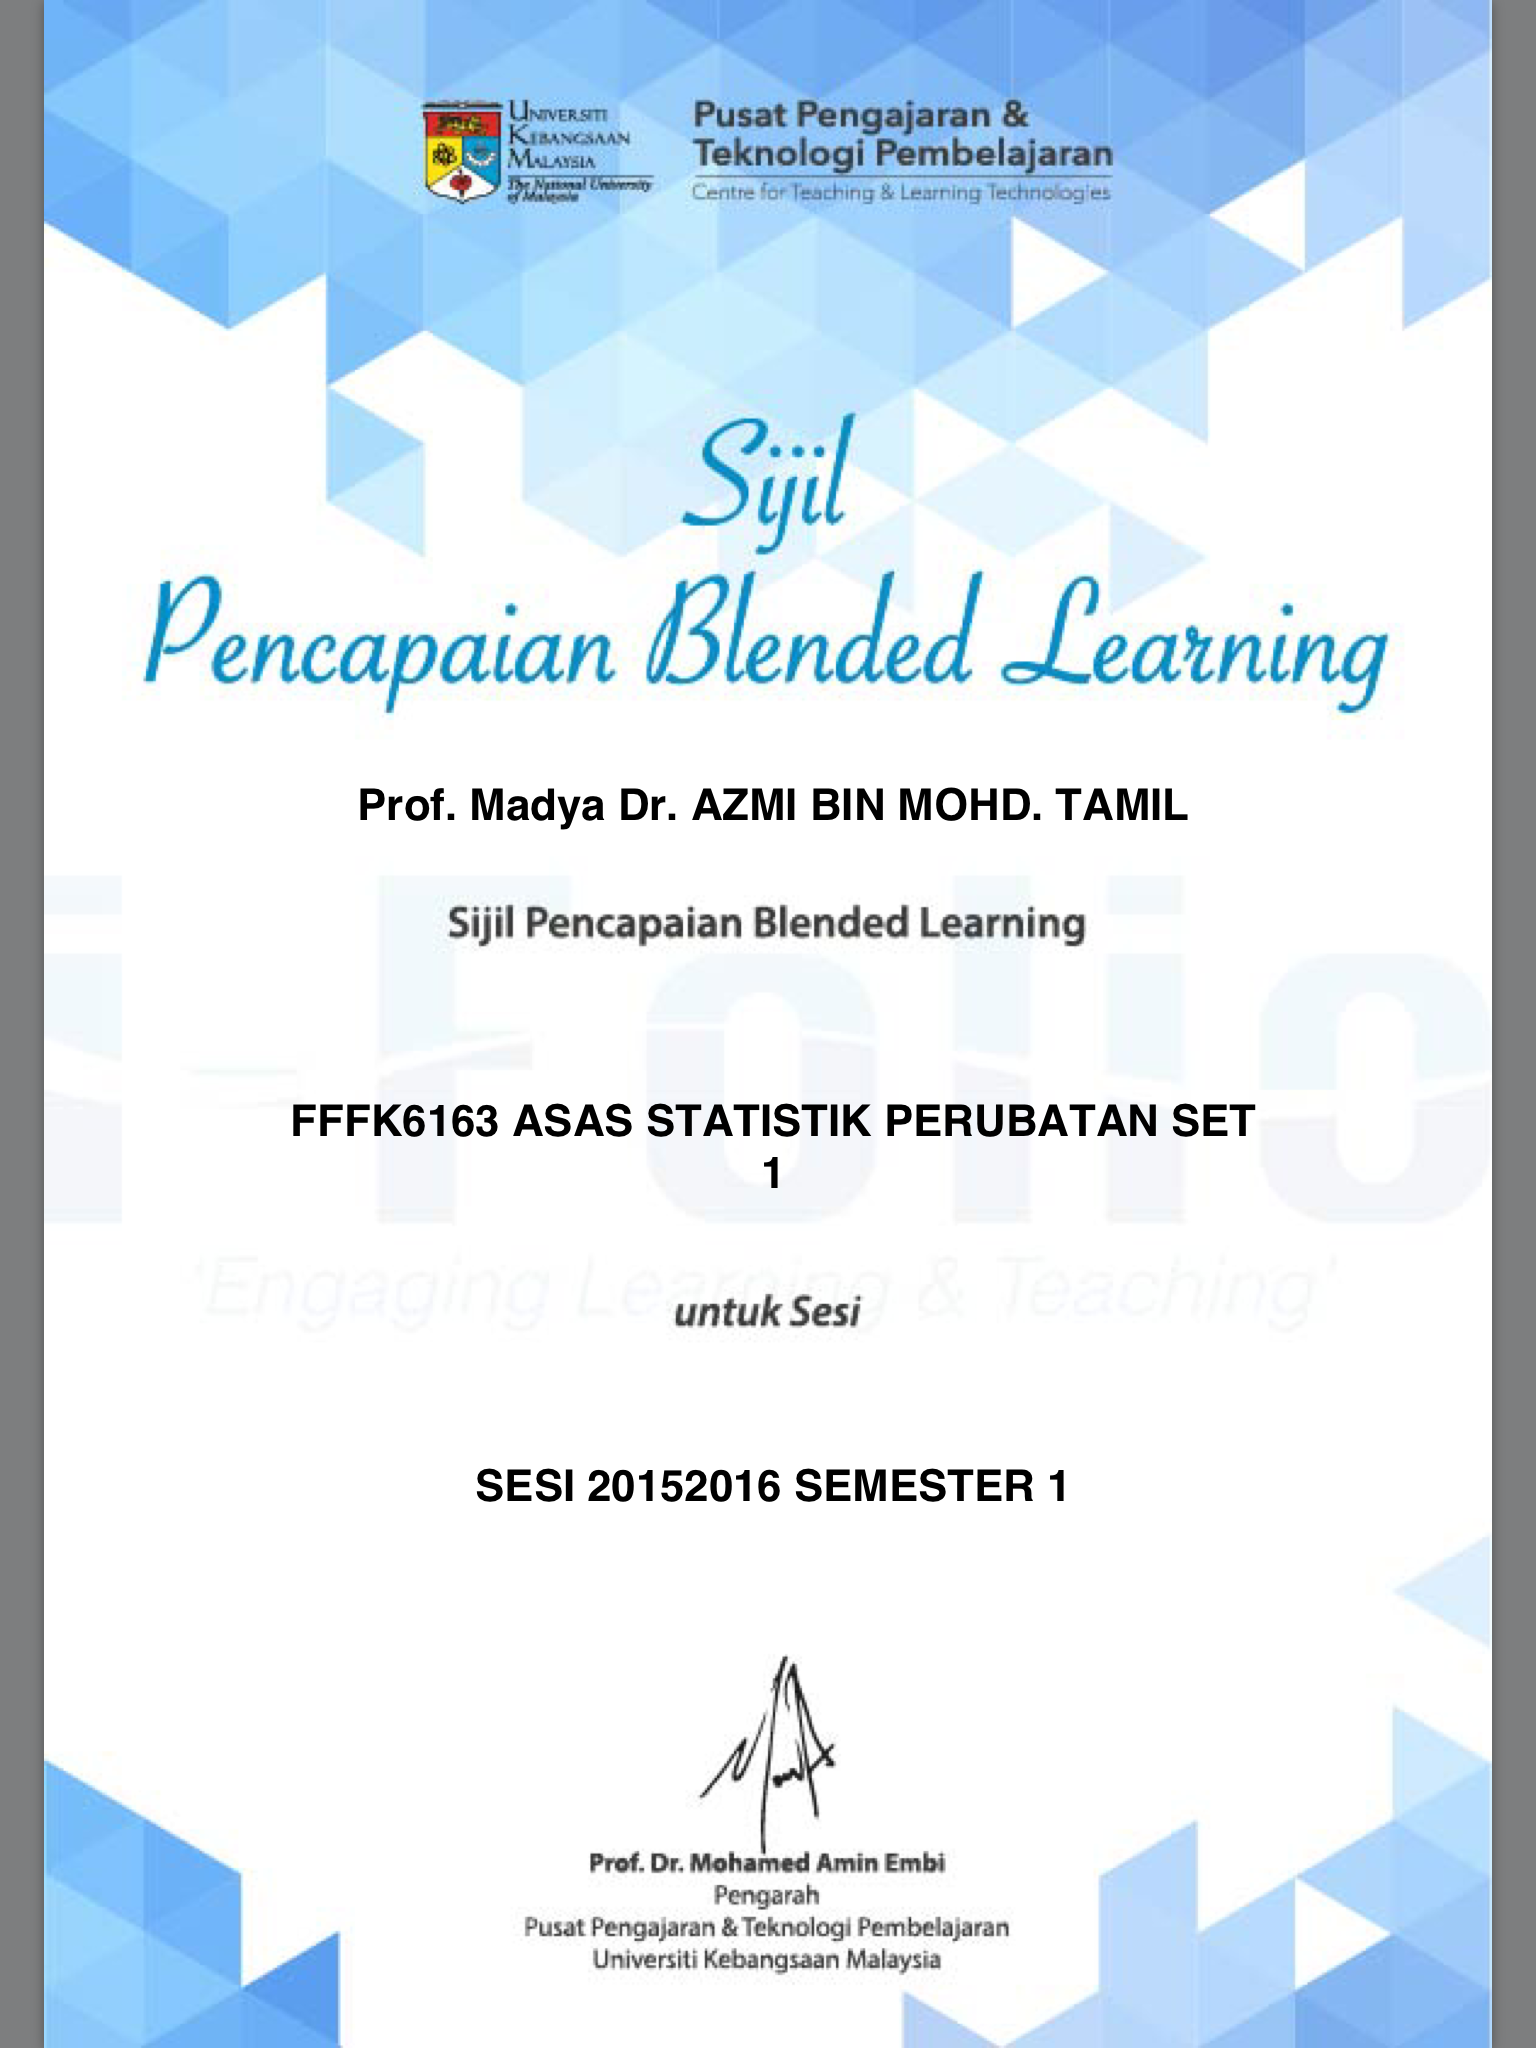 How to Print Your Blended Learning Certificate | PPUKM